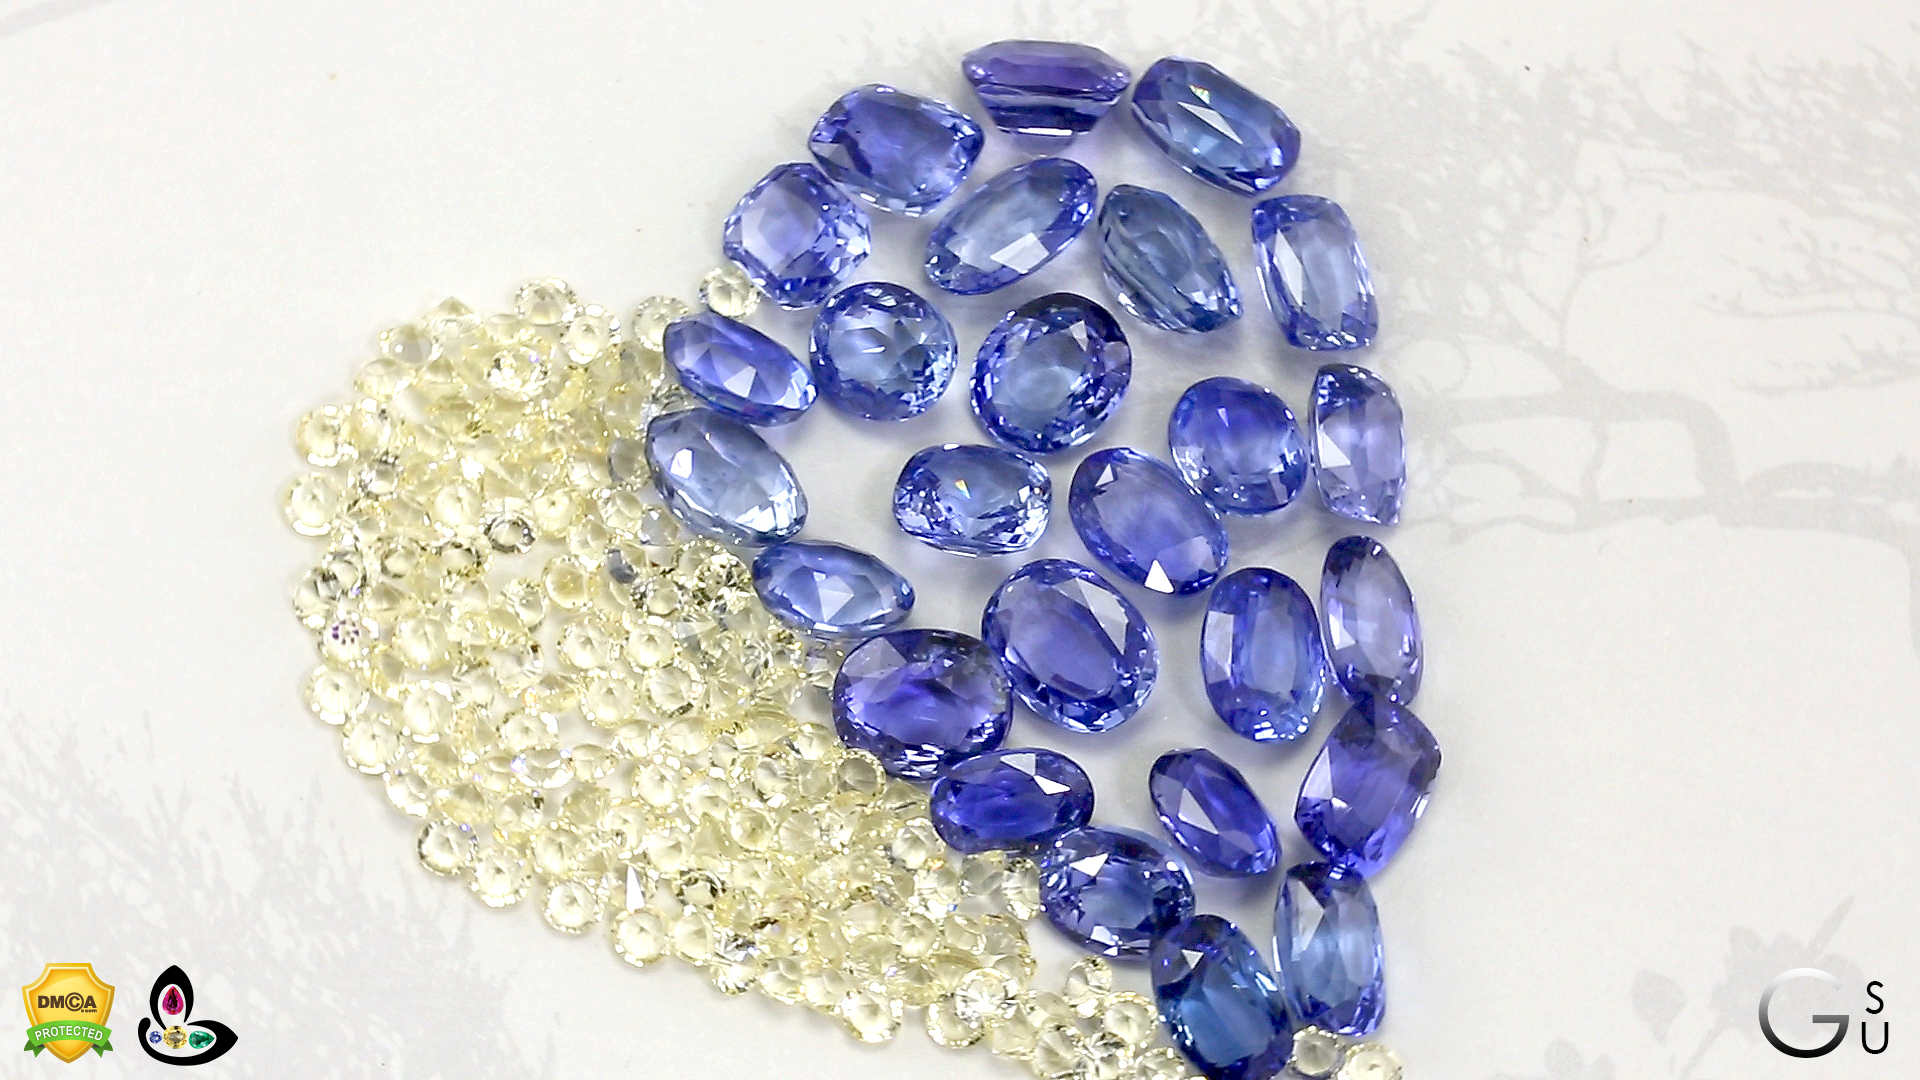 Blue sapphire impact on Personality & Self-growth